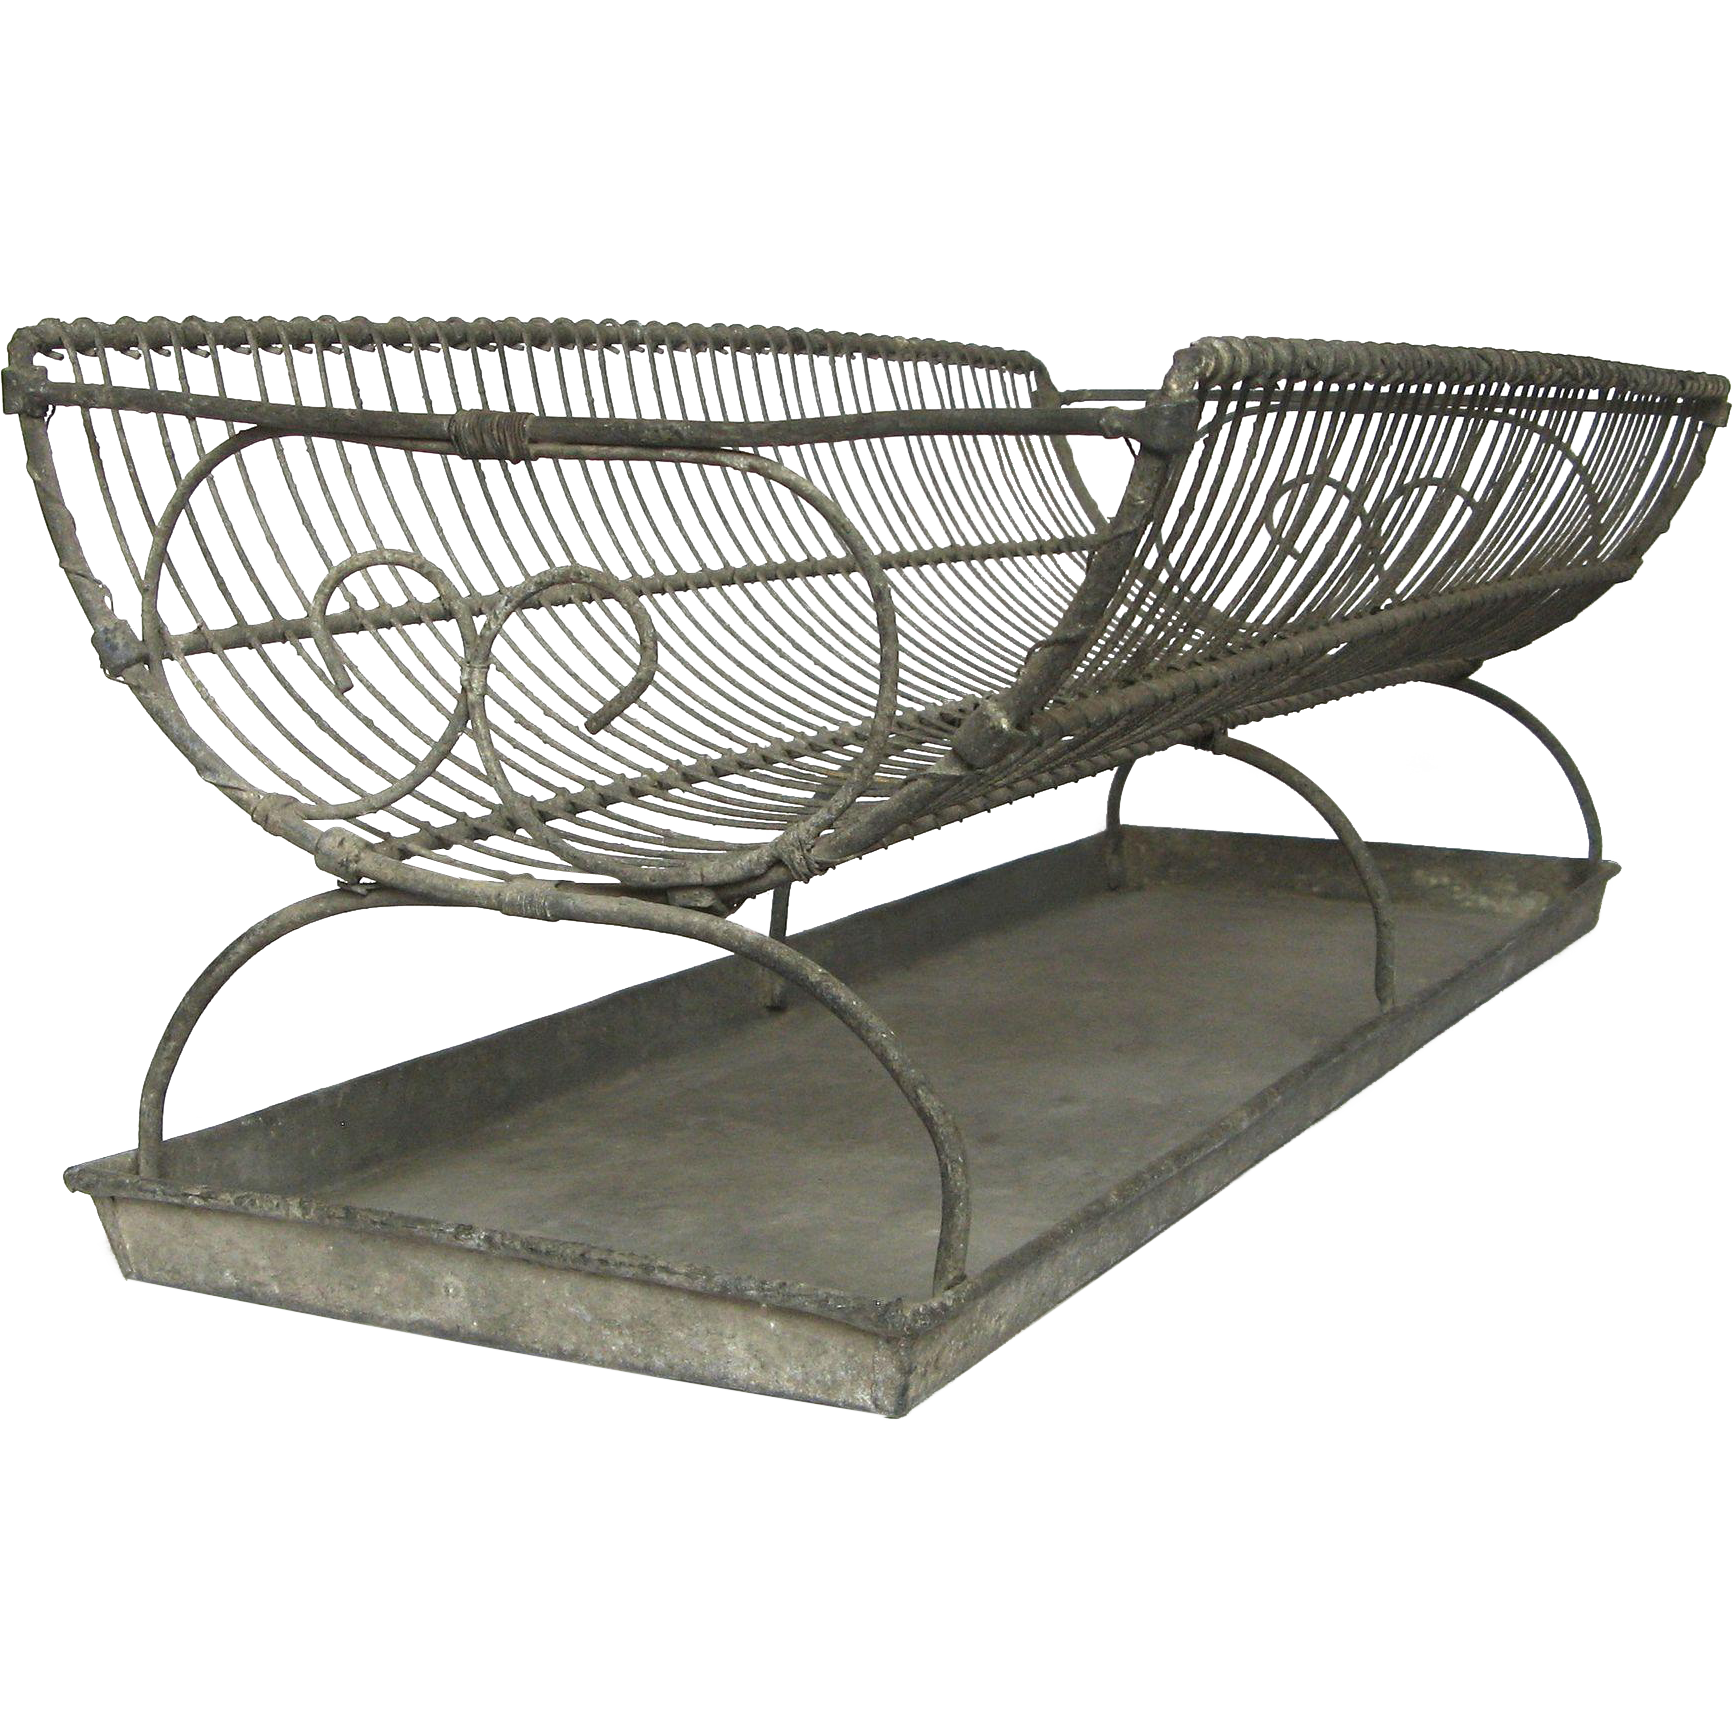 Xl Antique French Wire Dish Drainer With Zinc Tray Dish Dryer